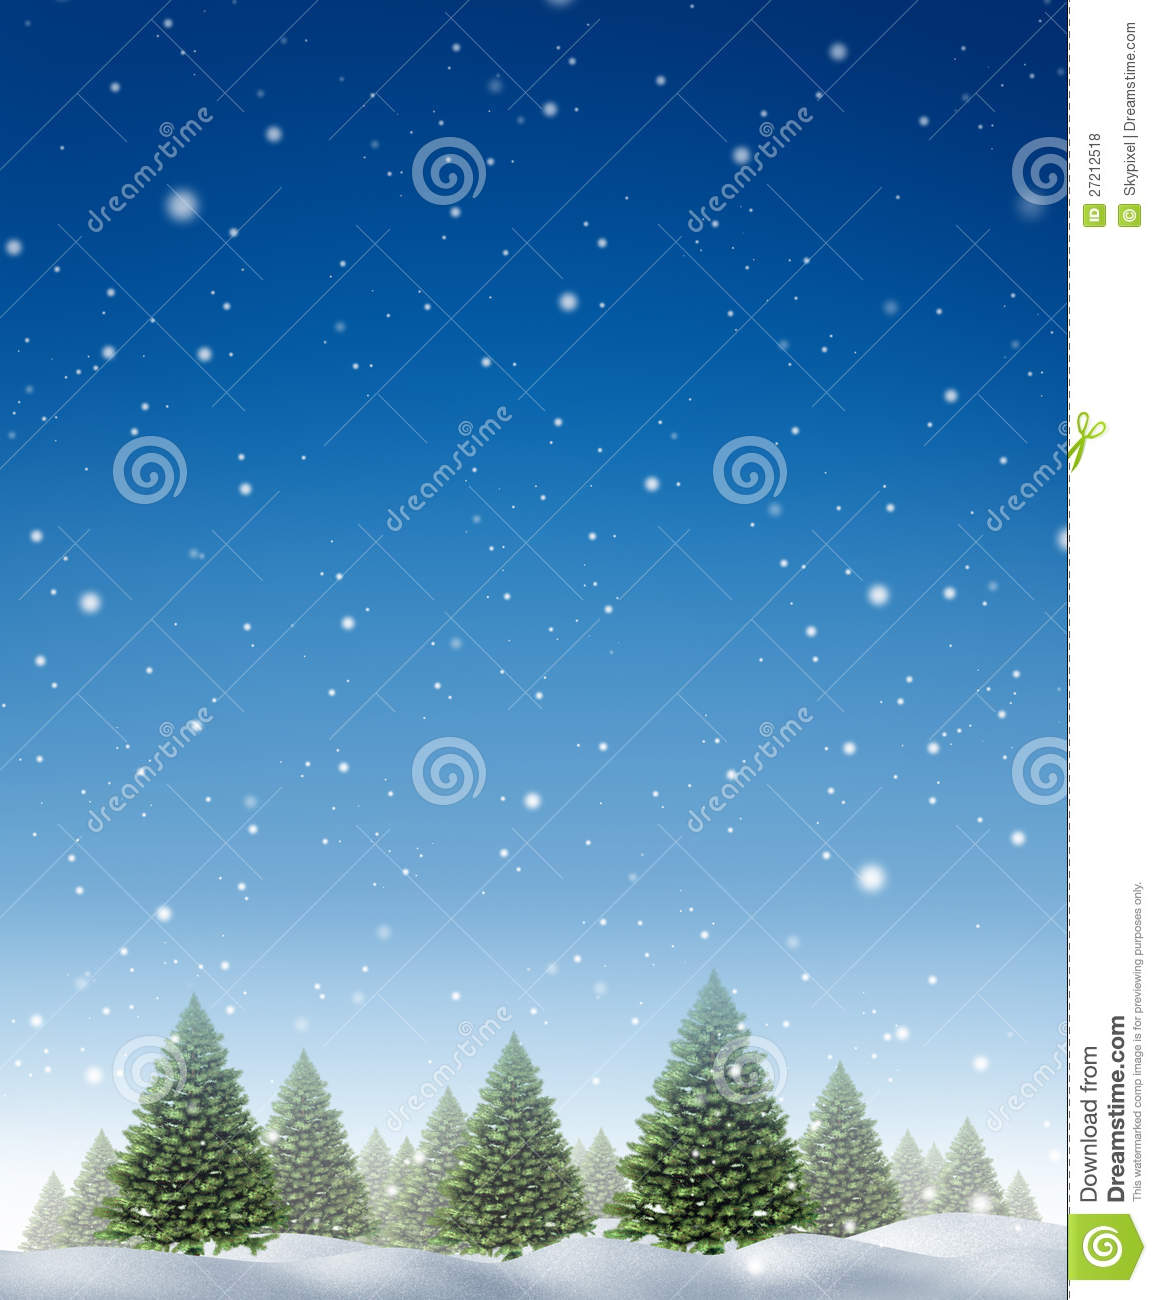 Snow Falling At Night Wallpaper Winter Holiday Background Royalty Free Stock Photos